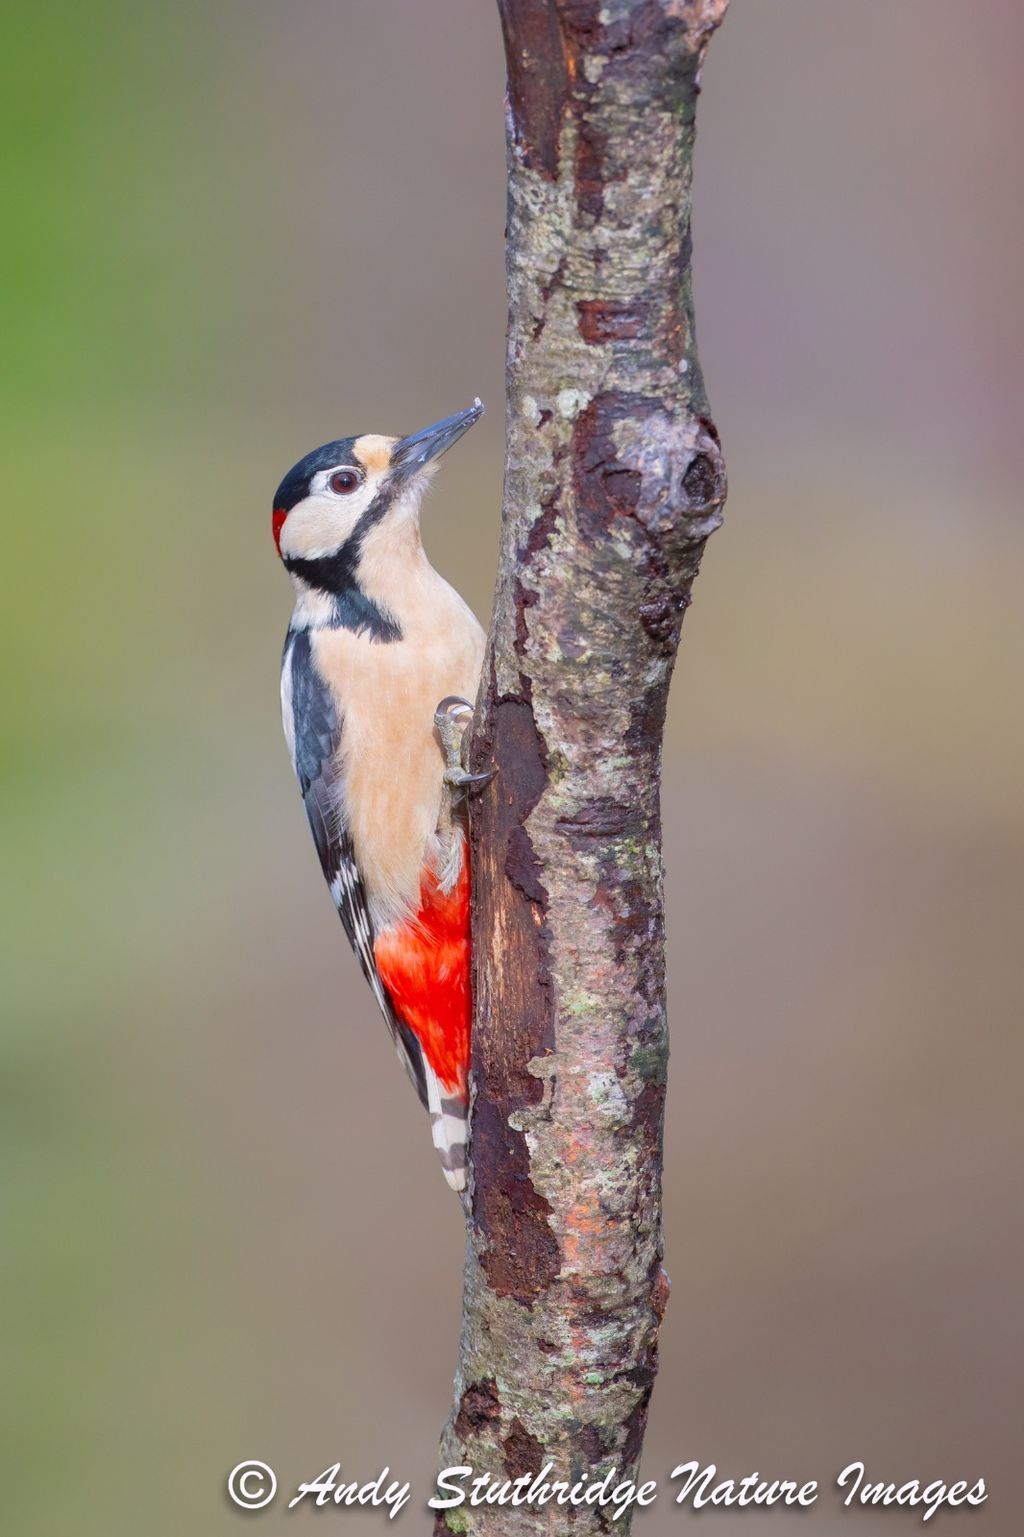 Male Great Spotted Woodpecker Climbing a Tree